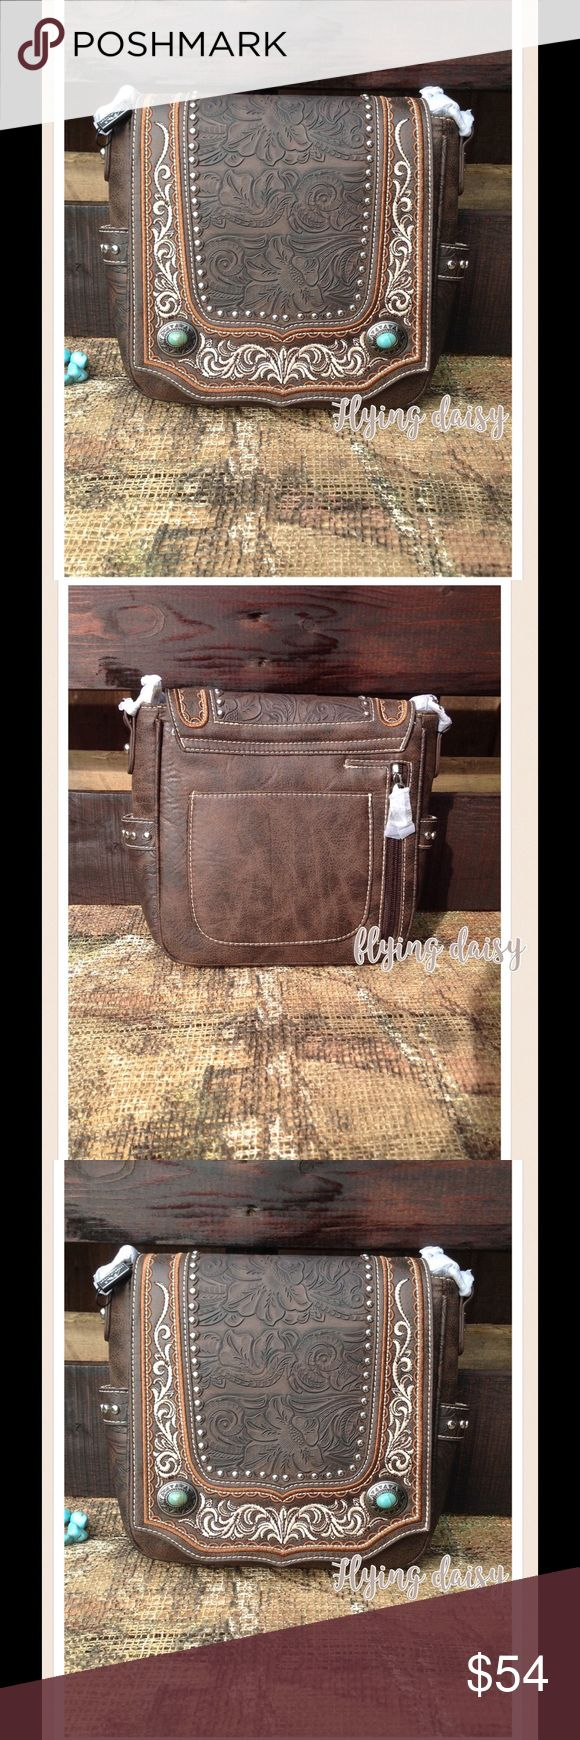 """Concealed Carry Messenger Bag Western Boho Bag Western vegan leather concealed carry flap messenger purse with tooled scrolling, embroidered accents, antique silver tone concho and turquoise stone, zippered enclosure on the top of the bag, concealed carry zippered pocket to conceal your handgun (7"""" x 5.5"""").  The inside compartment divided by a medium zippered pocket, also inside of bag has a zippered pocket, and 2 open pockets. Metal feet on the bottom for protection and stability. Single…"""